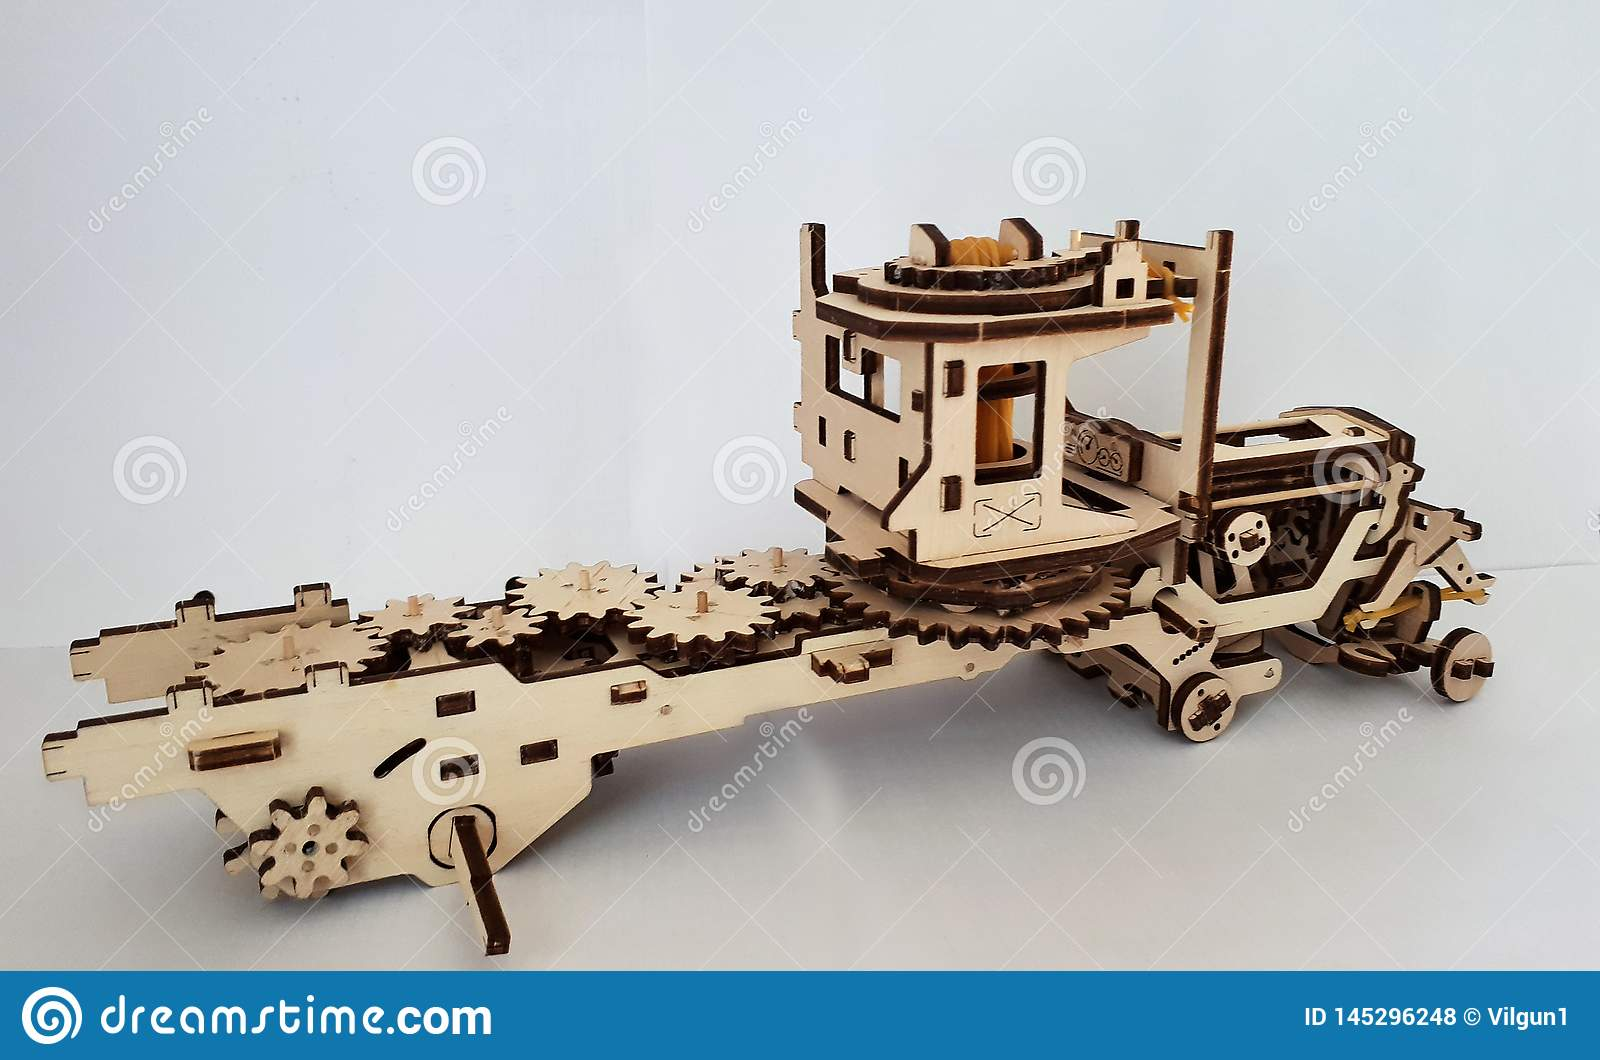 Wooden Designer Ugears  It Is A Model Of A Car Made Of Wood